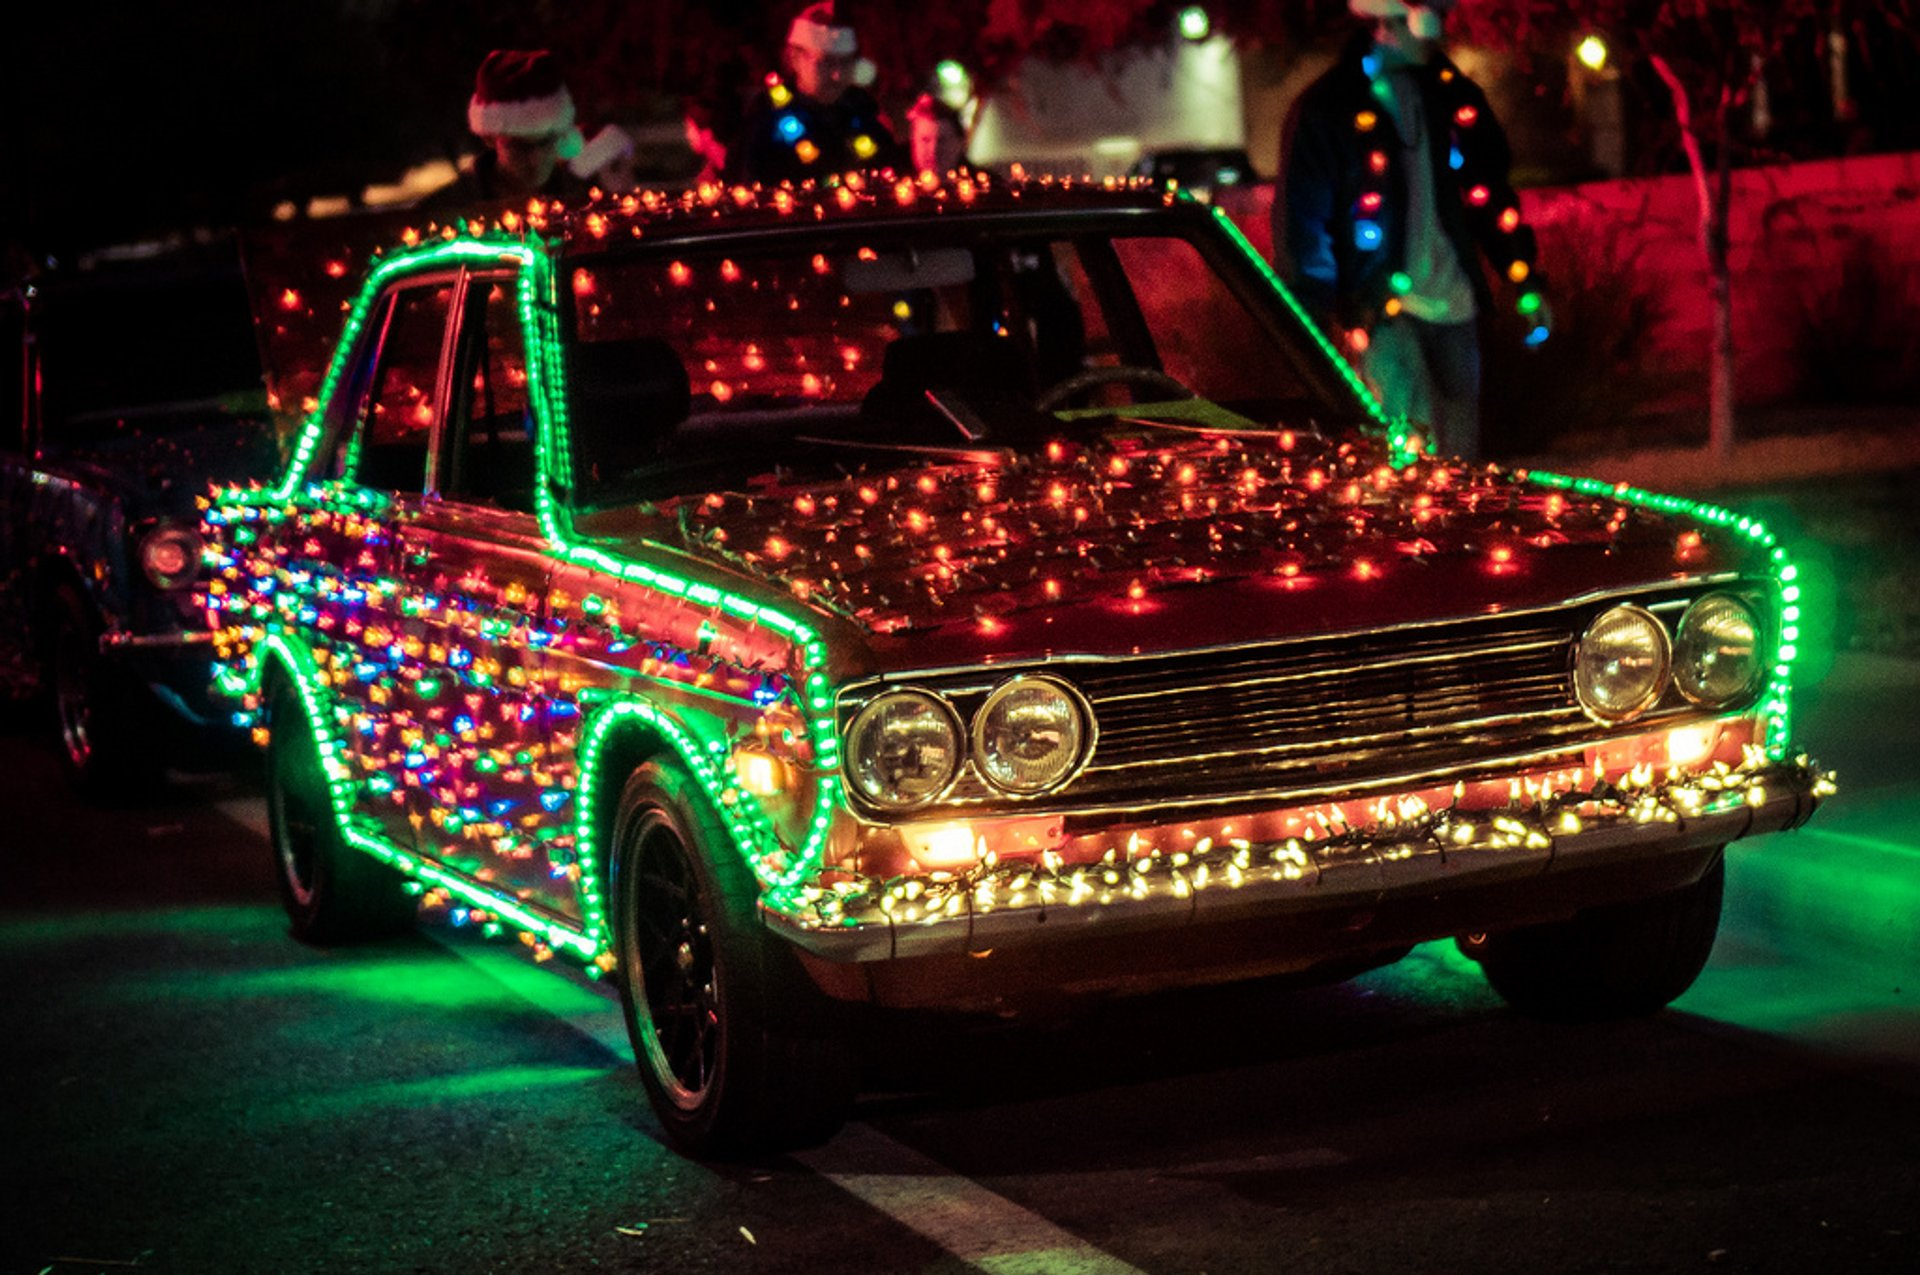 Chandler Parade Of Lights 2019 In Arizona